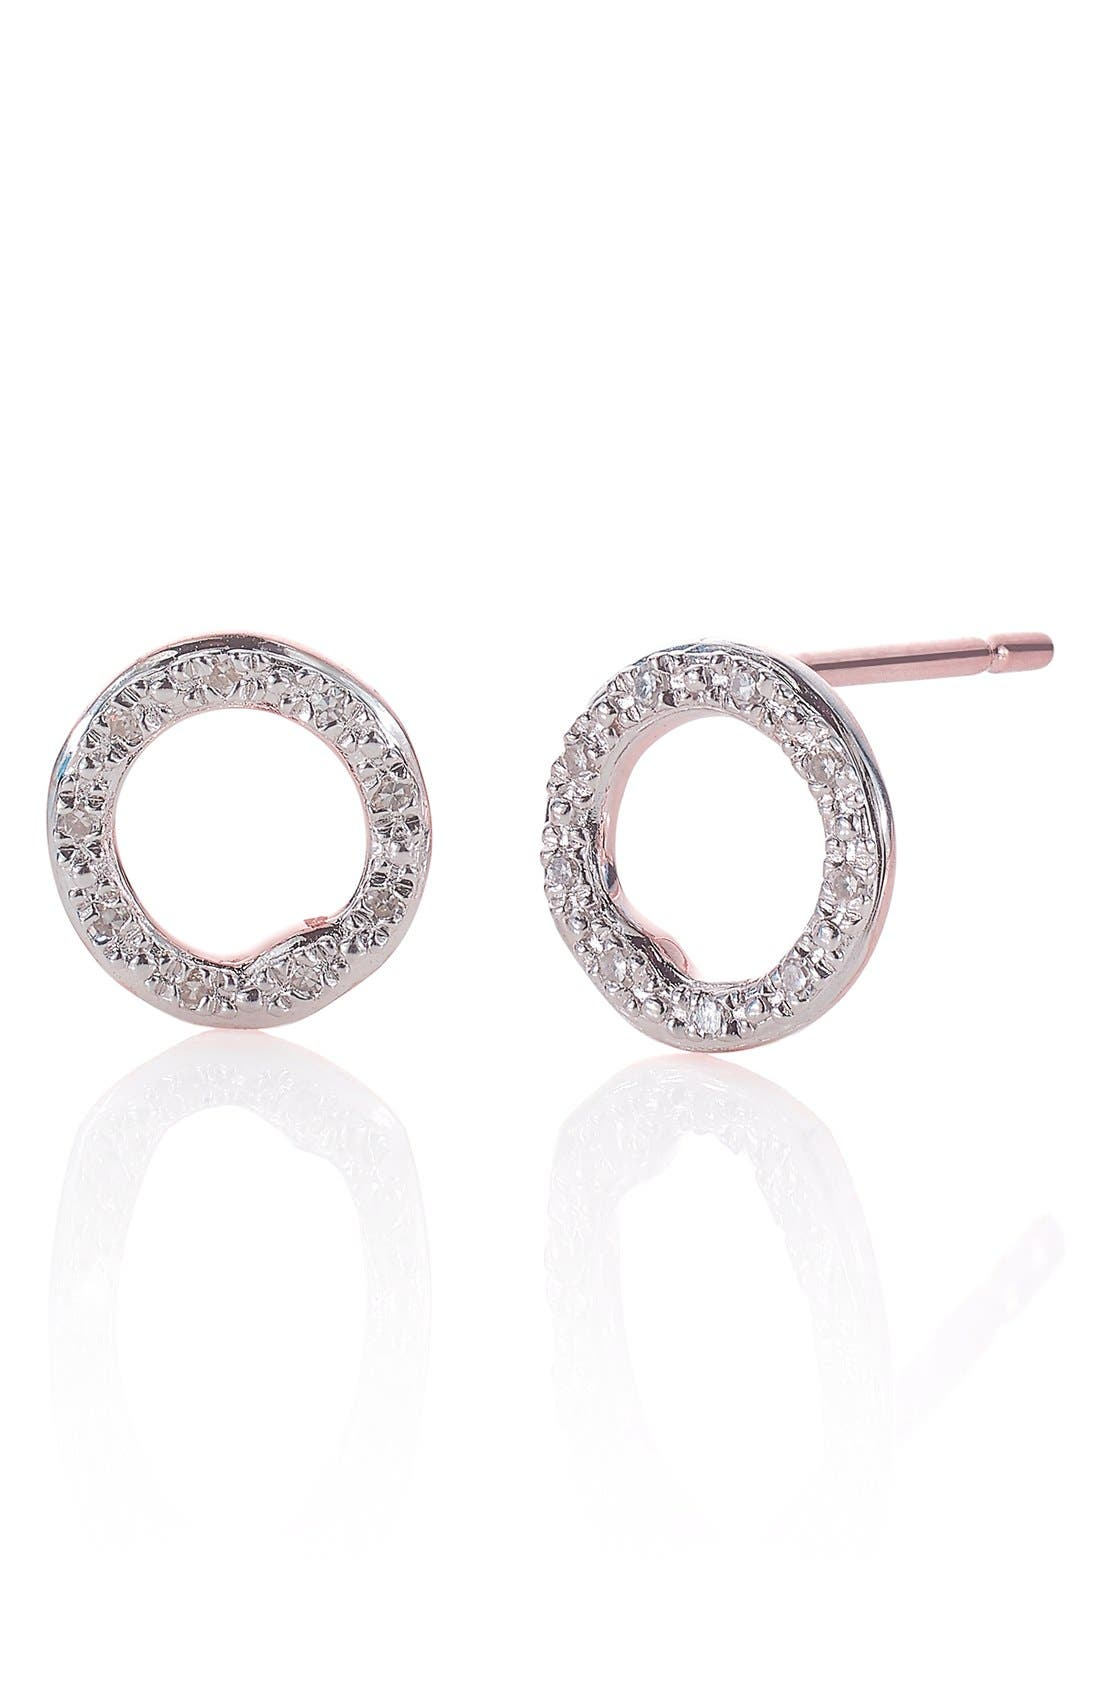 'Riva' Circle Stud Diamond Earrings,                         Main,                         color, Rose Gold